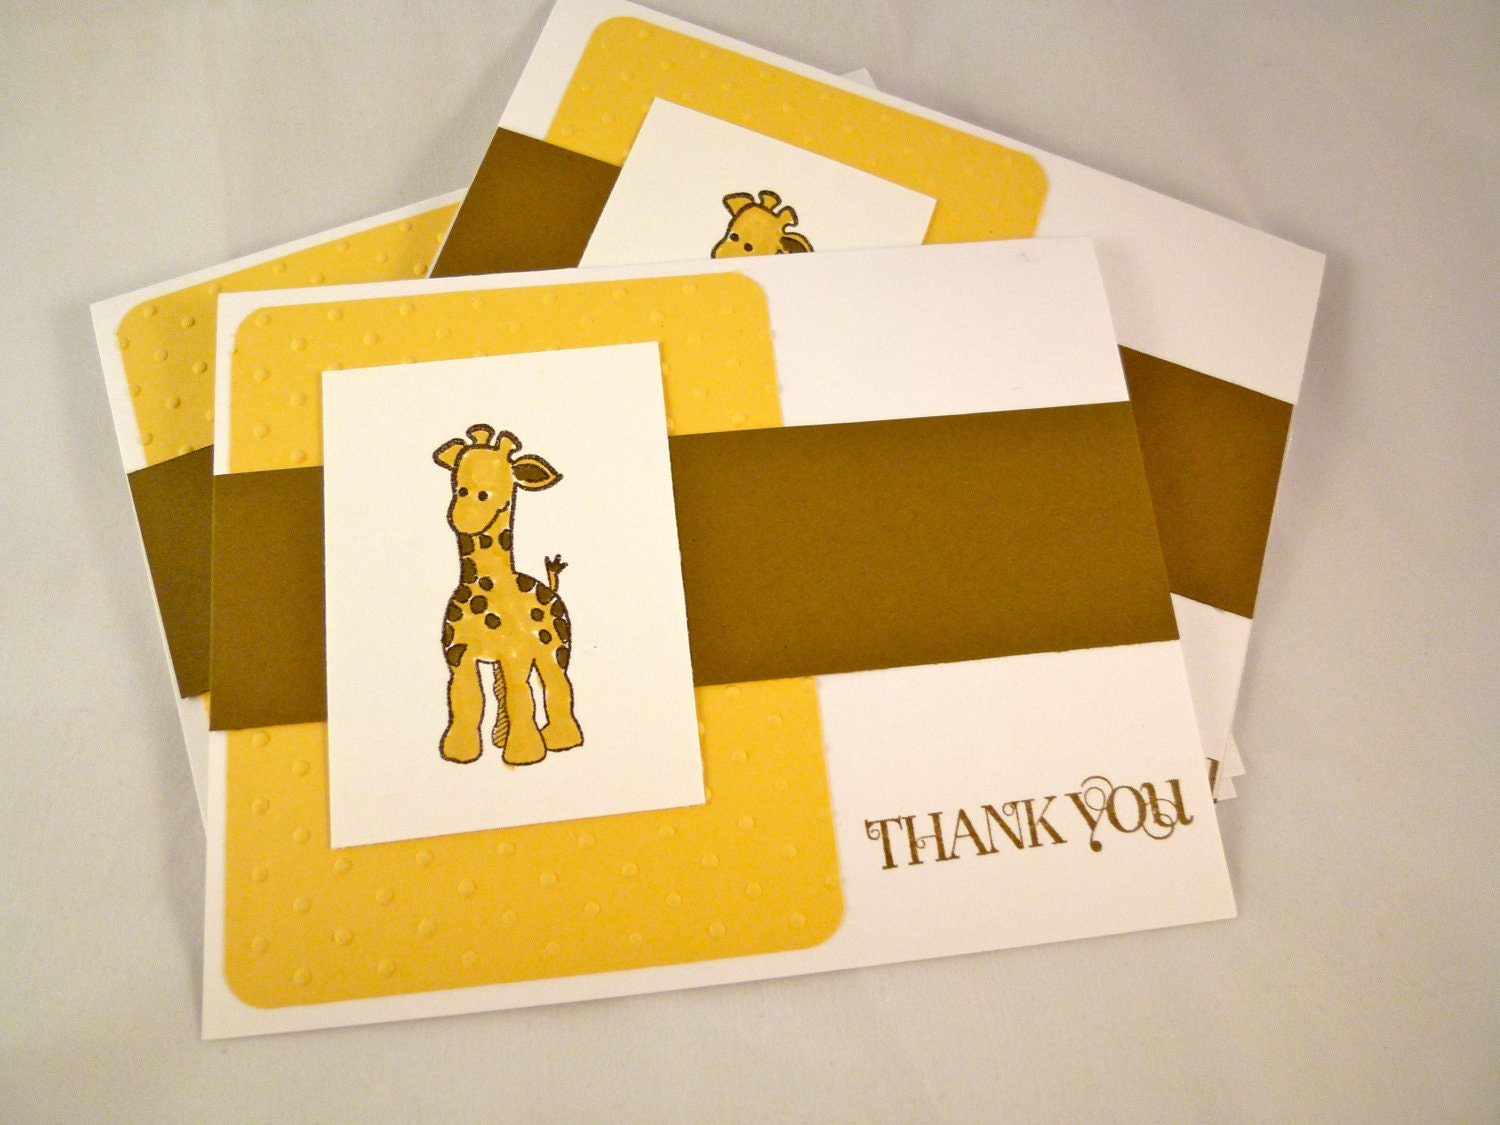 Etsygreetings Handmade Cards Baby Giraffe Blank Thank You